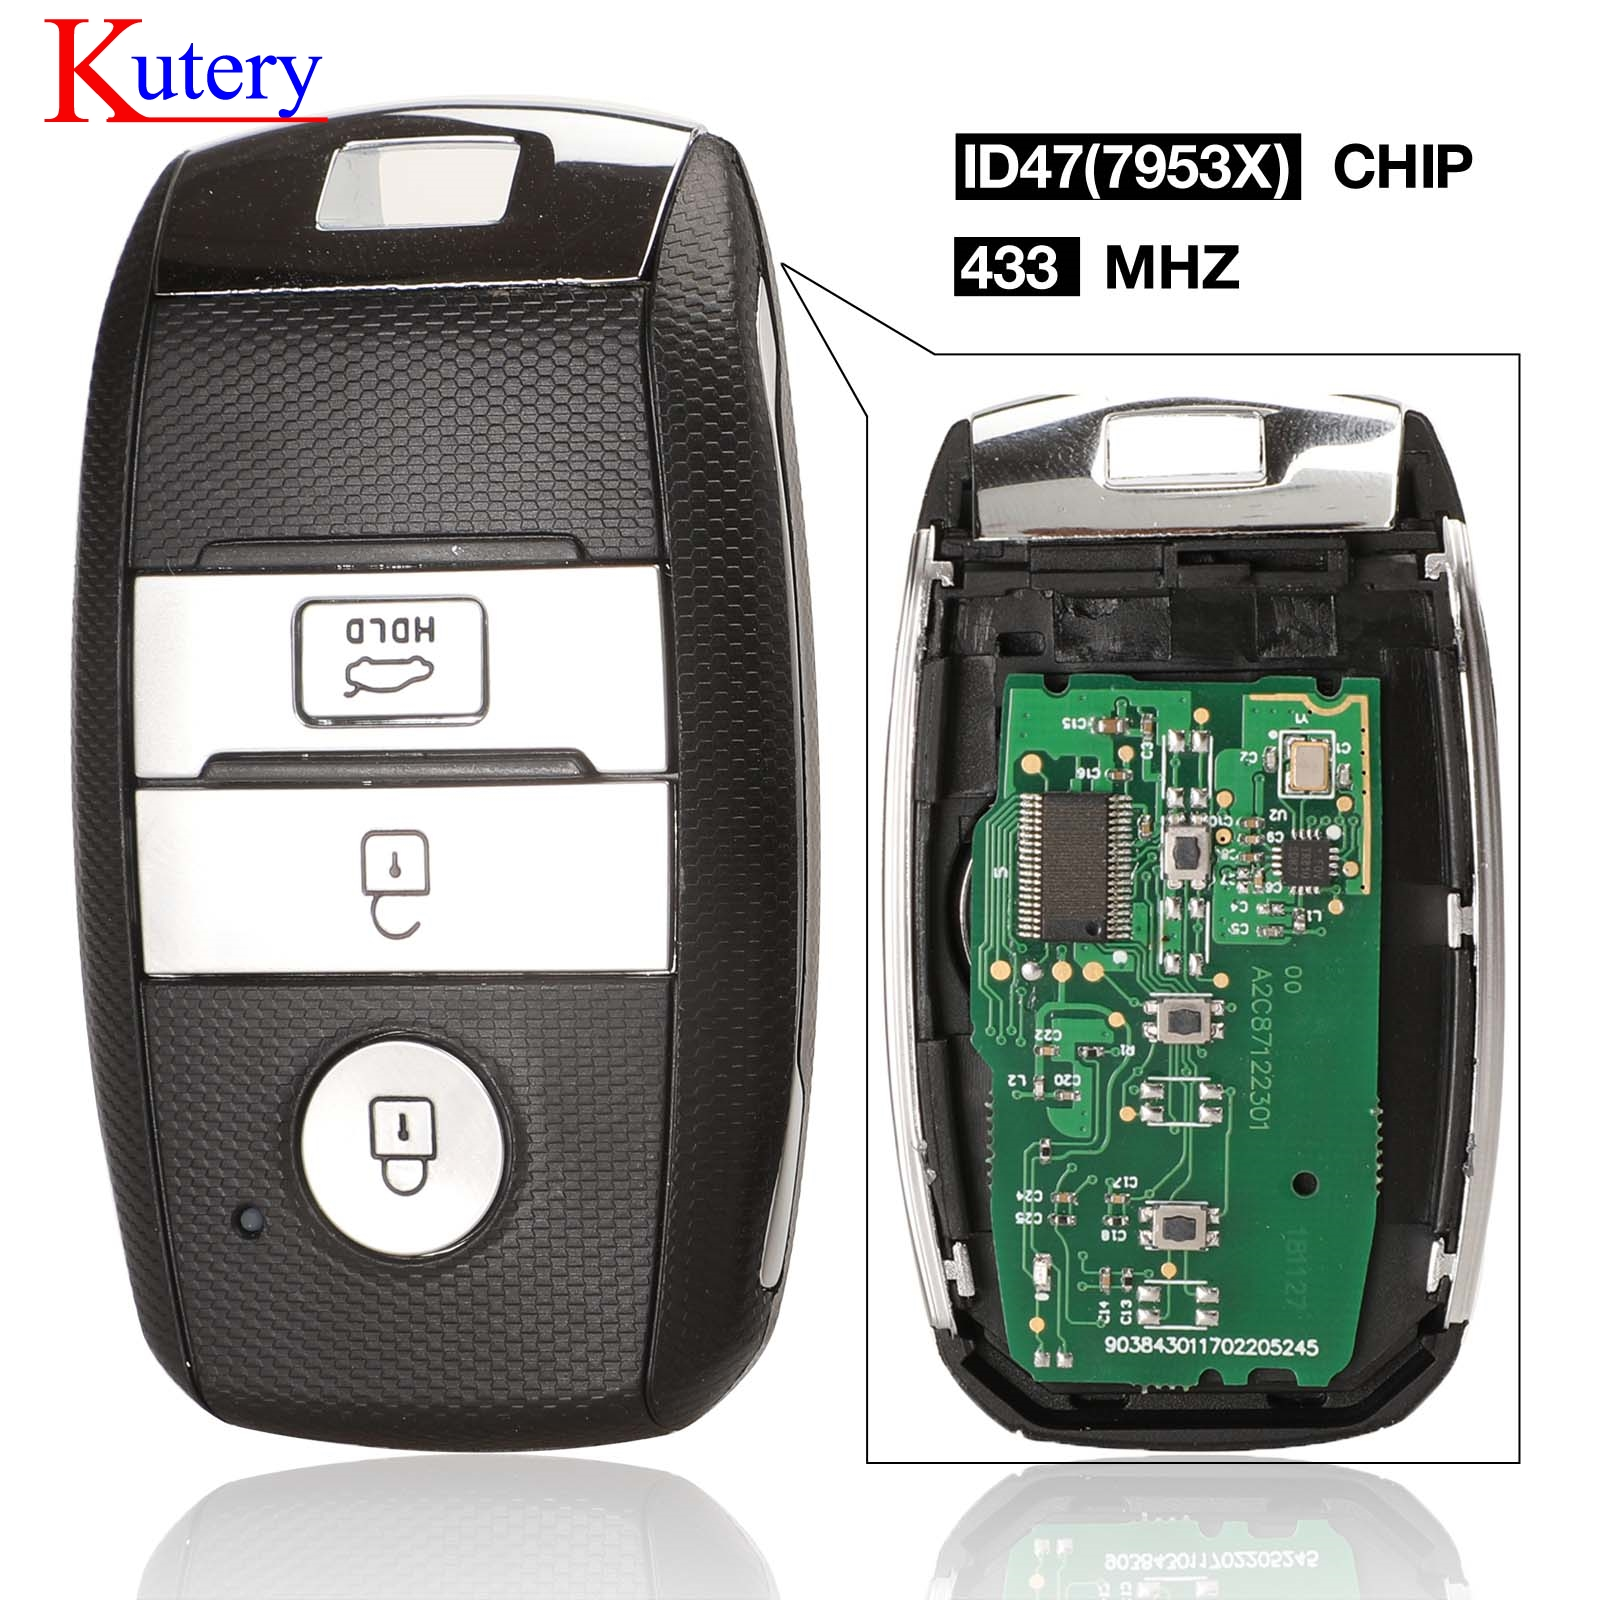 Car Smart Remote Key Control Fob Uncut 3 Buttons 433mhz ID46 Keyless Entry Fit for Kia K5 Sportage Sorento 2019